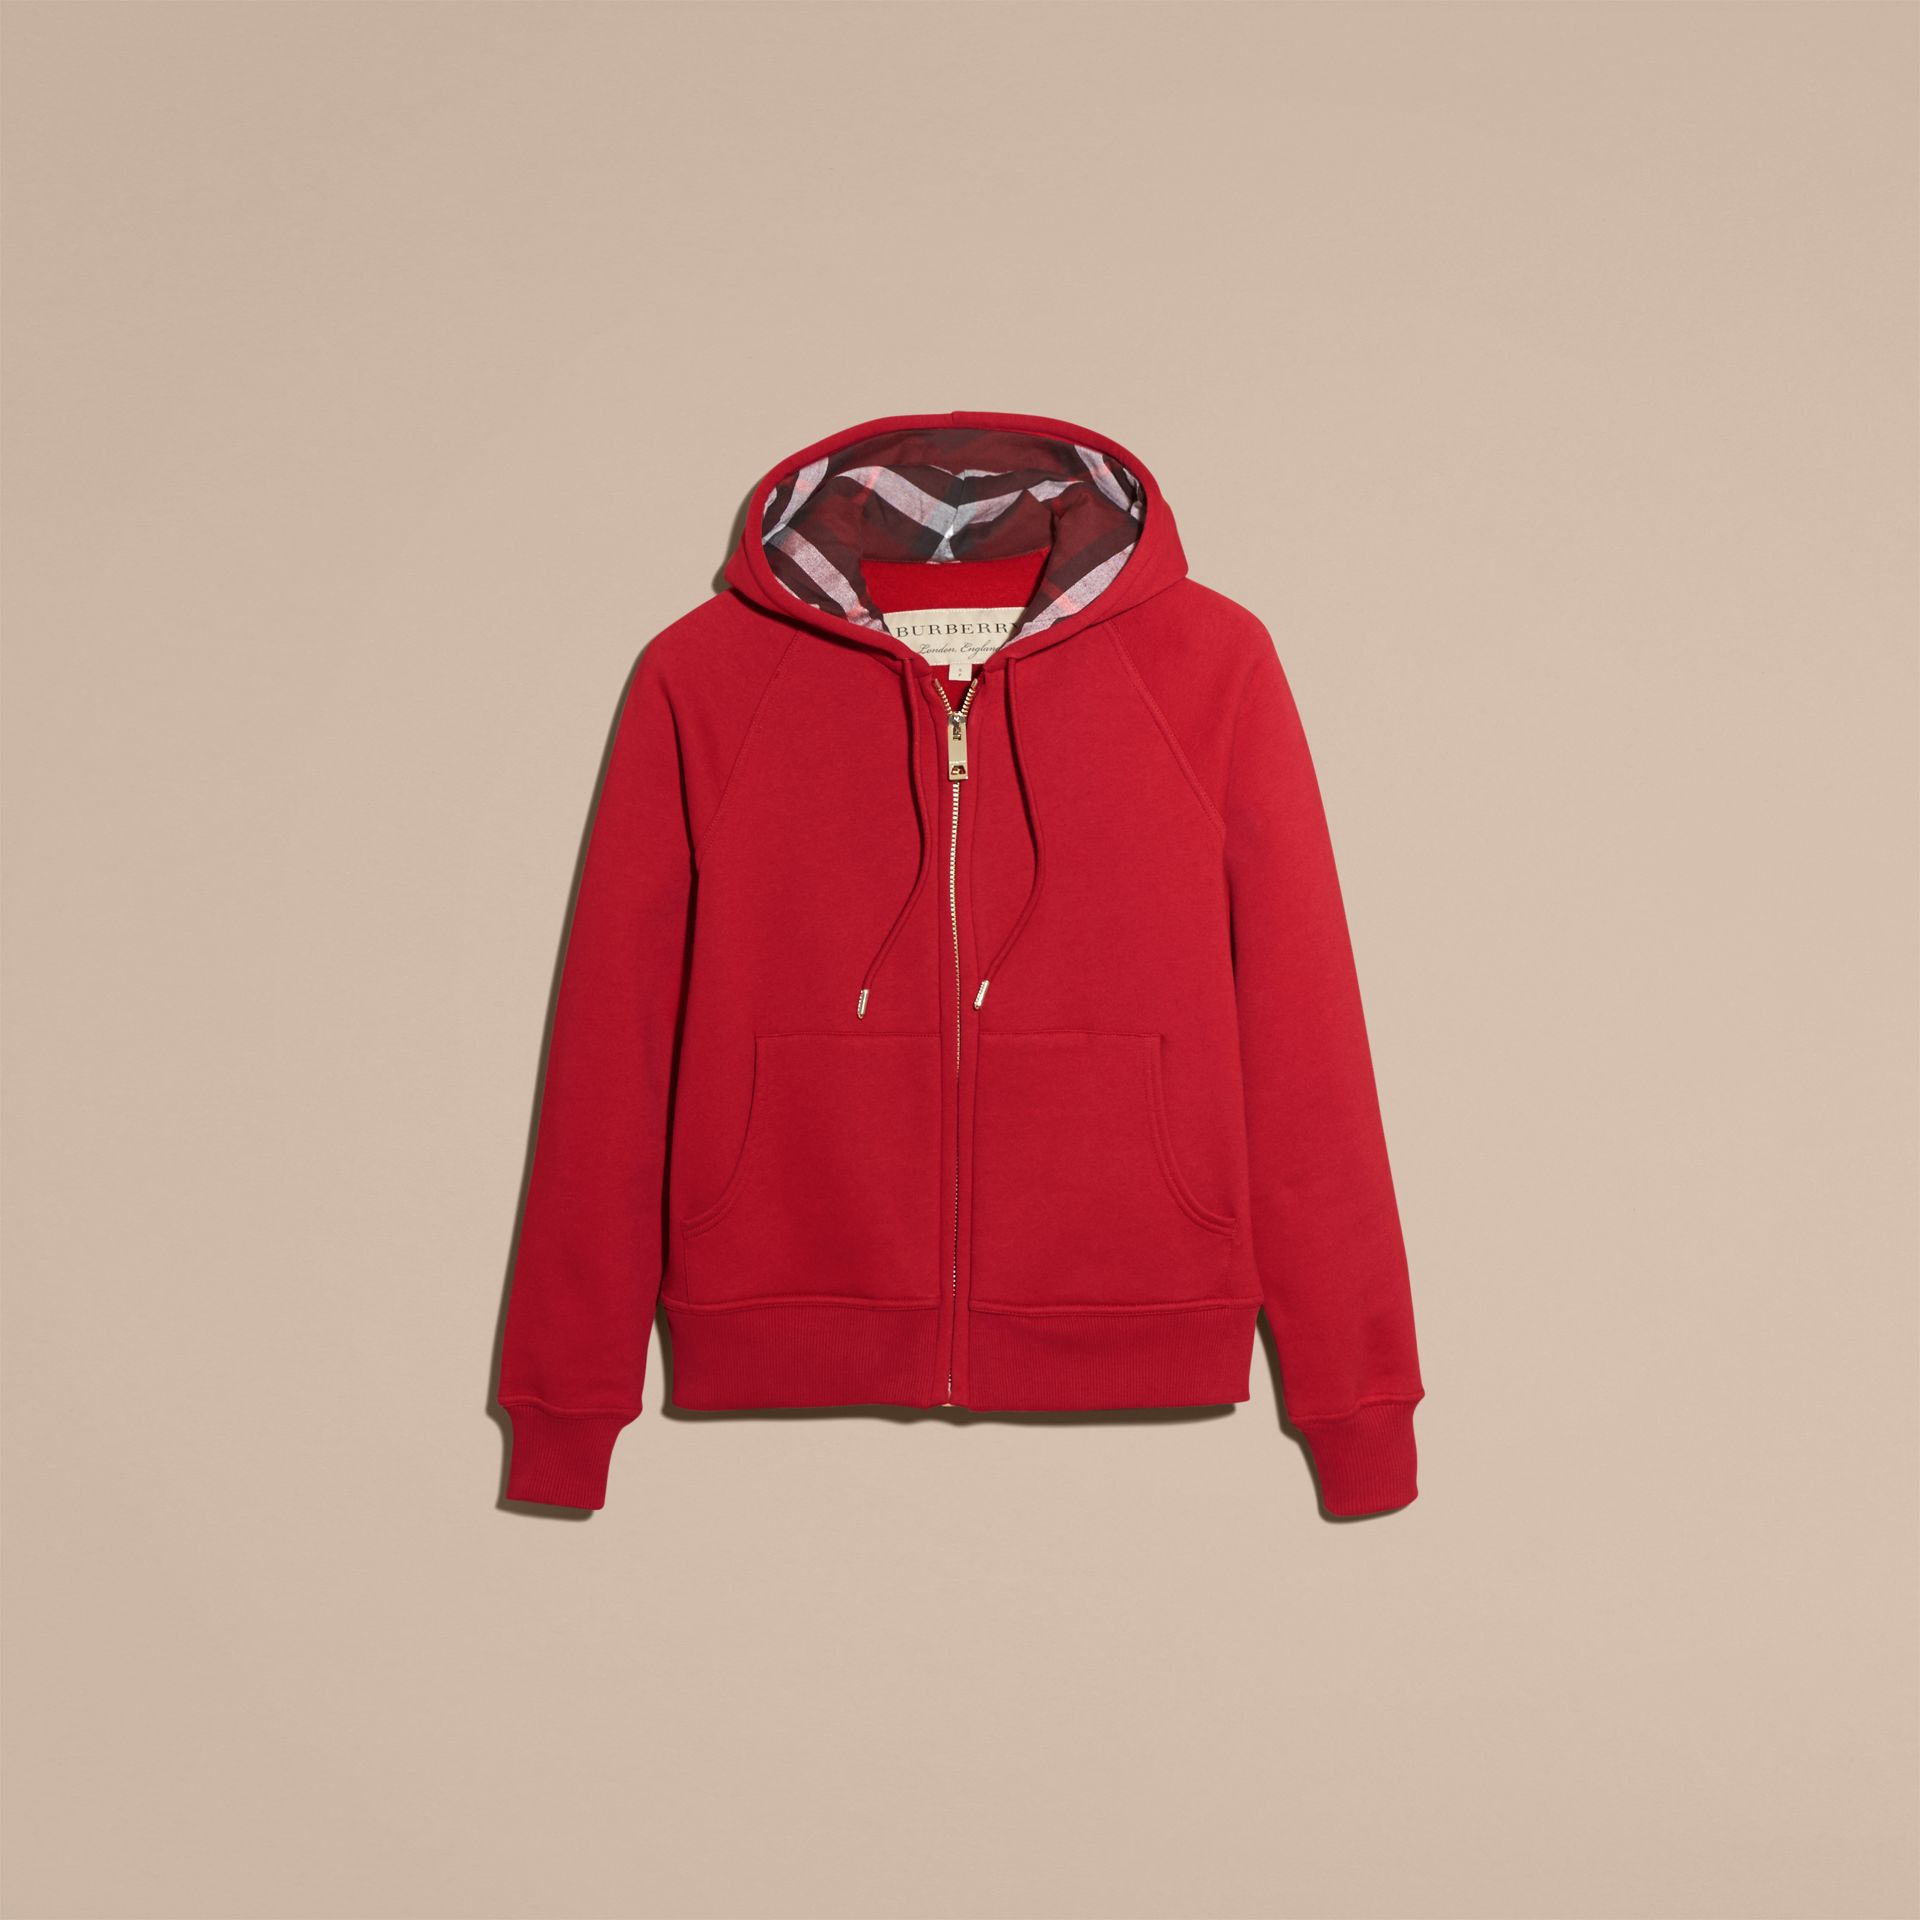 Hooded Zip-front Cotton Blend Sweatshirt in Parade Red - Women | Burberry - gallery image 4